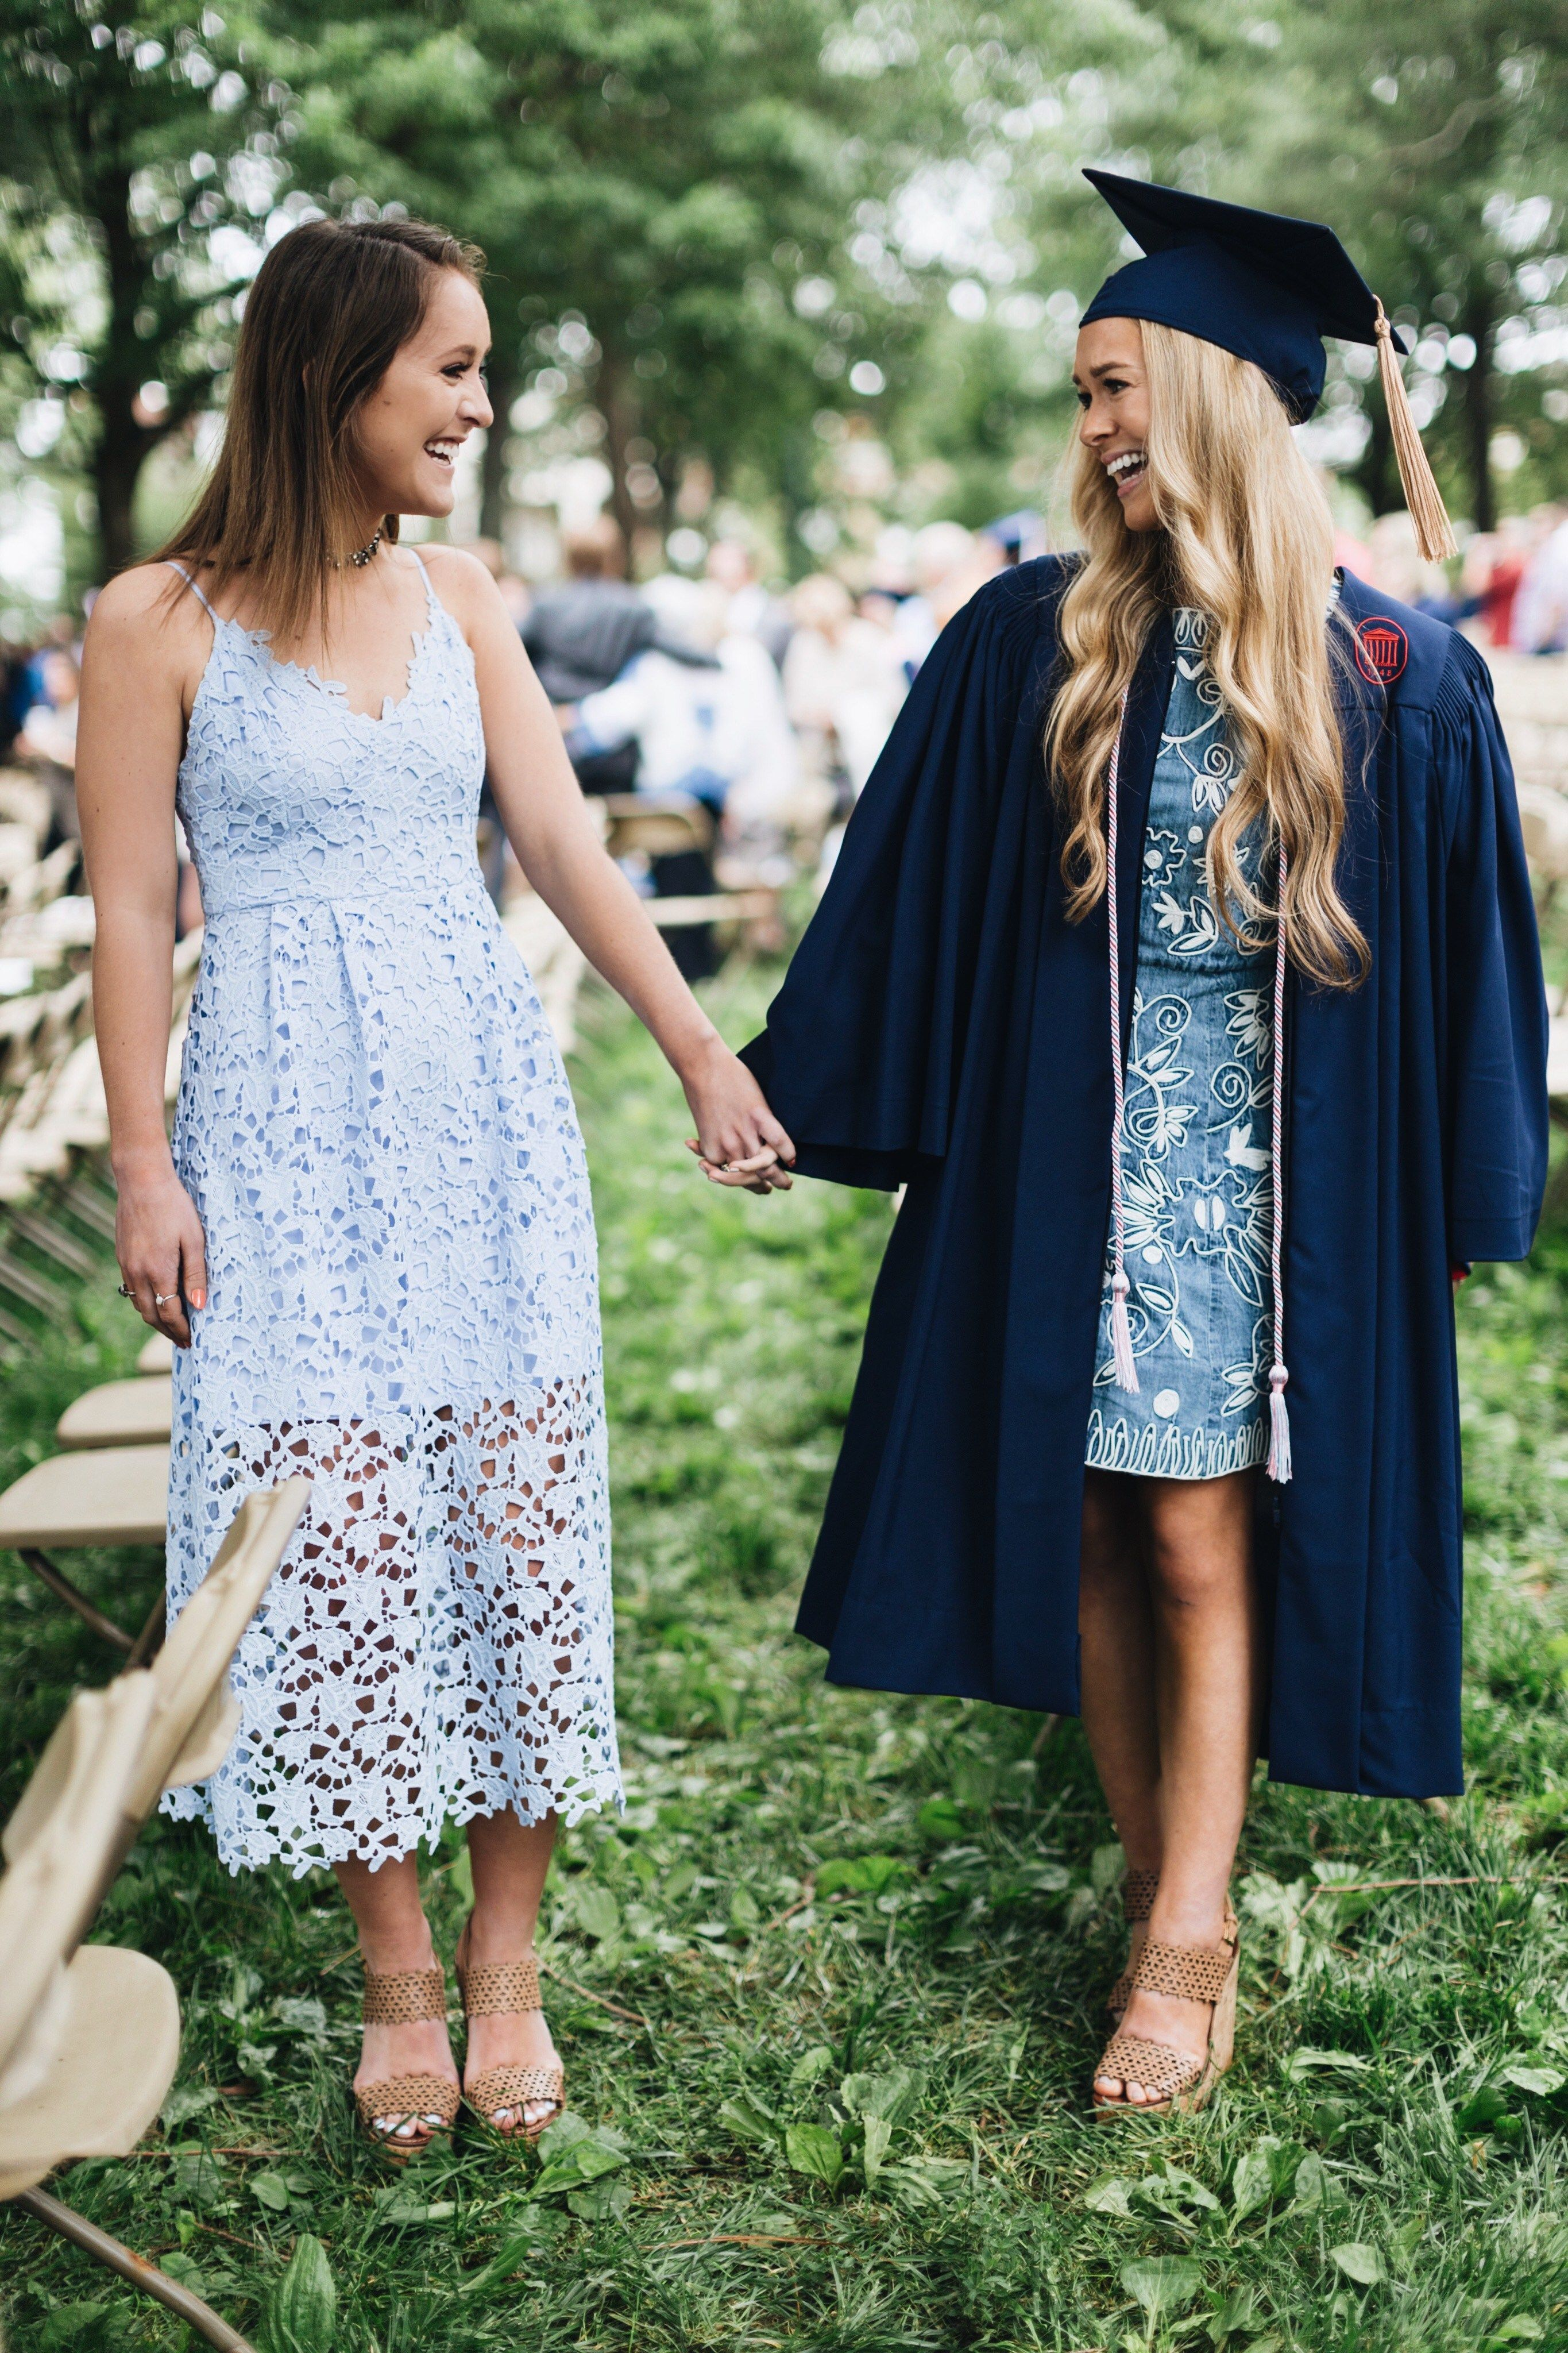 Spring Graduation Outfits 50 Best Outfits Graduation Outfit College Graduation Dress College Graduation Gown [ 4096 x 2730 Pixel ]